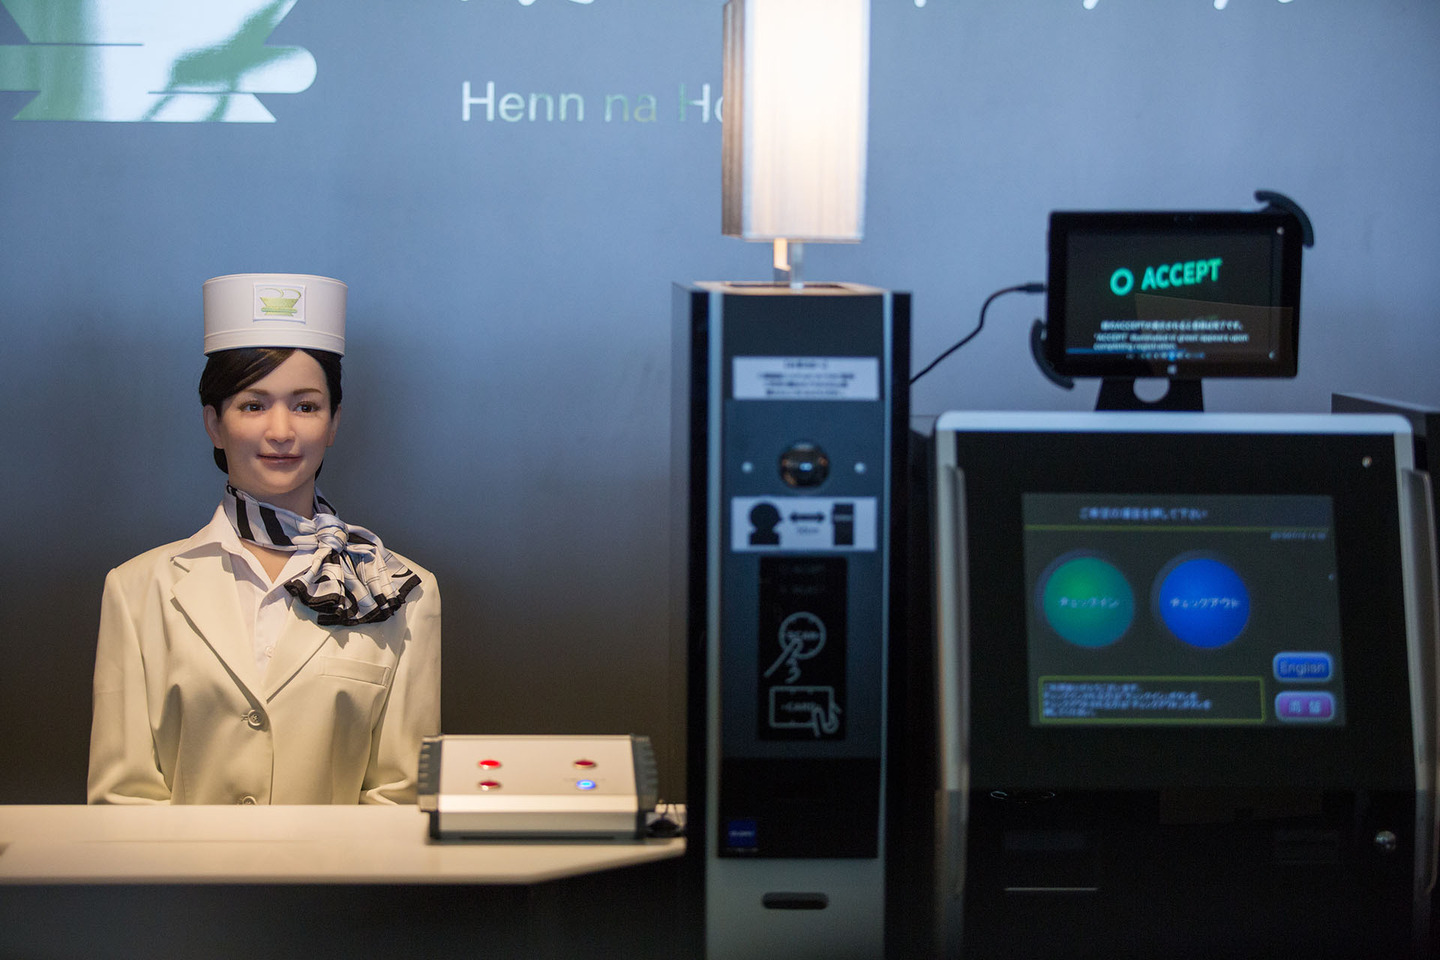 SASEBO, JAPAN - JULY 15: Guests check in via a completely automated system including a humanoid robot at the Henna Hotel (Weird Hotel) in Huis Ten Bosch, Netherlands themed amusement park on July 15, 2015 in Sasebo, Japan. The Henna Hotel, scheduled to open on July 17, features multi-lingual humanoid robots that greet visitors while other robots serve coffee and do the cleaning, as well as room doors that are opened by face-recognition technology. (Photo by Trevor Williams/WireImage)